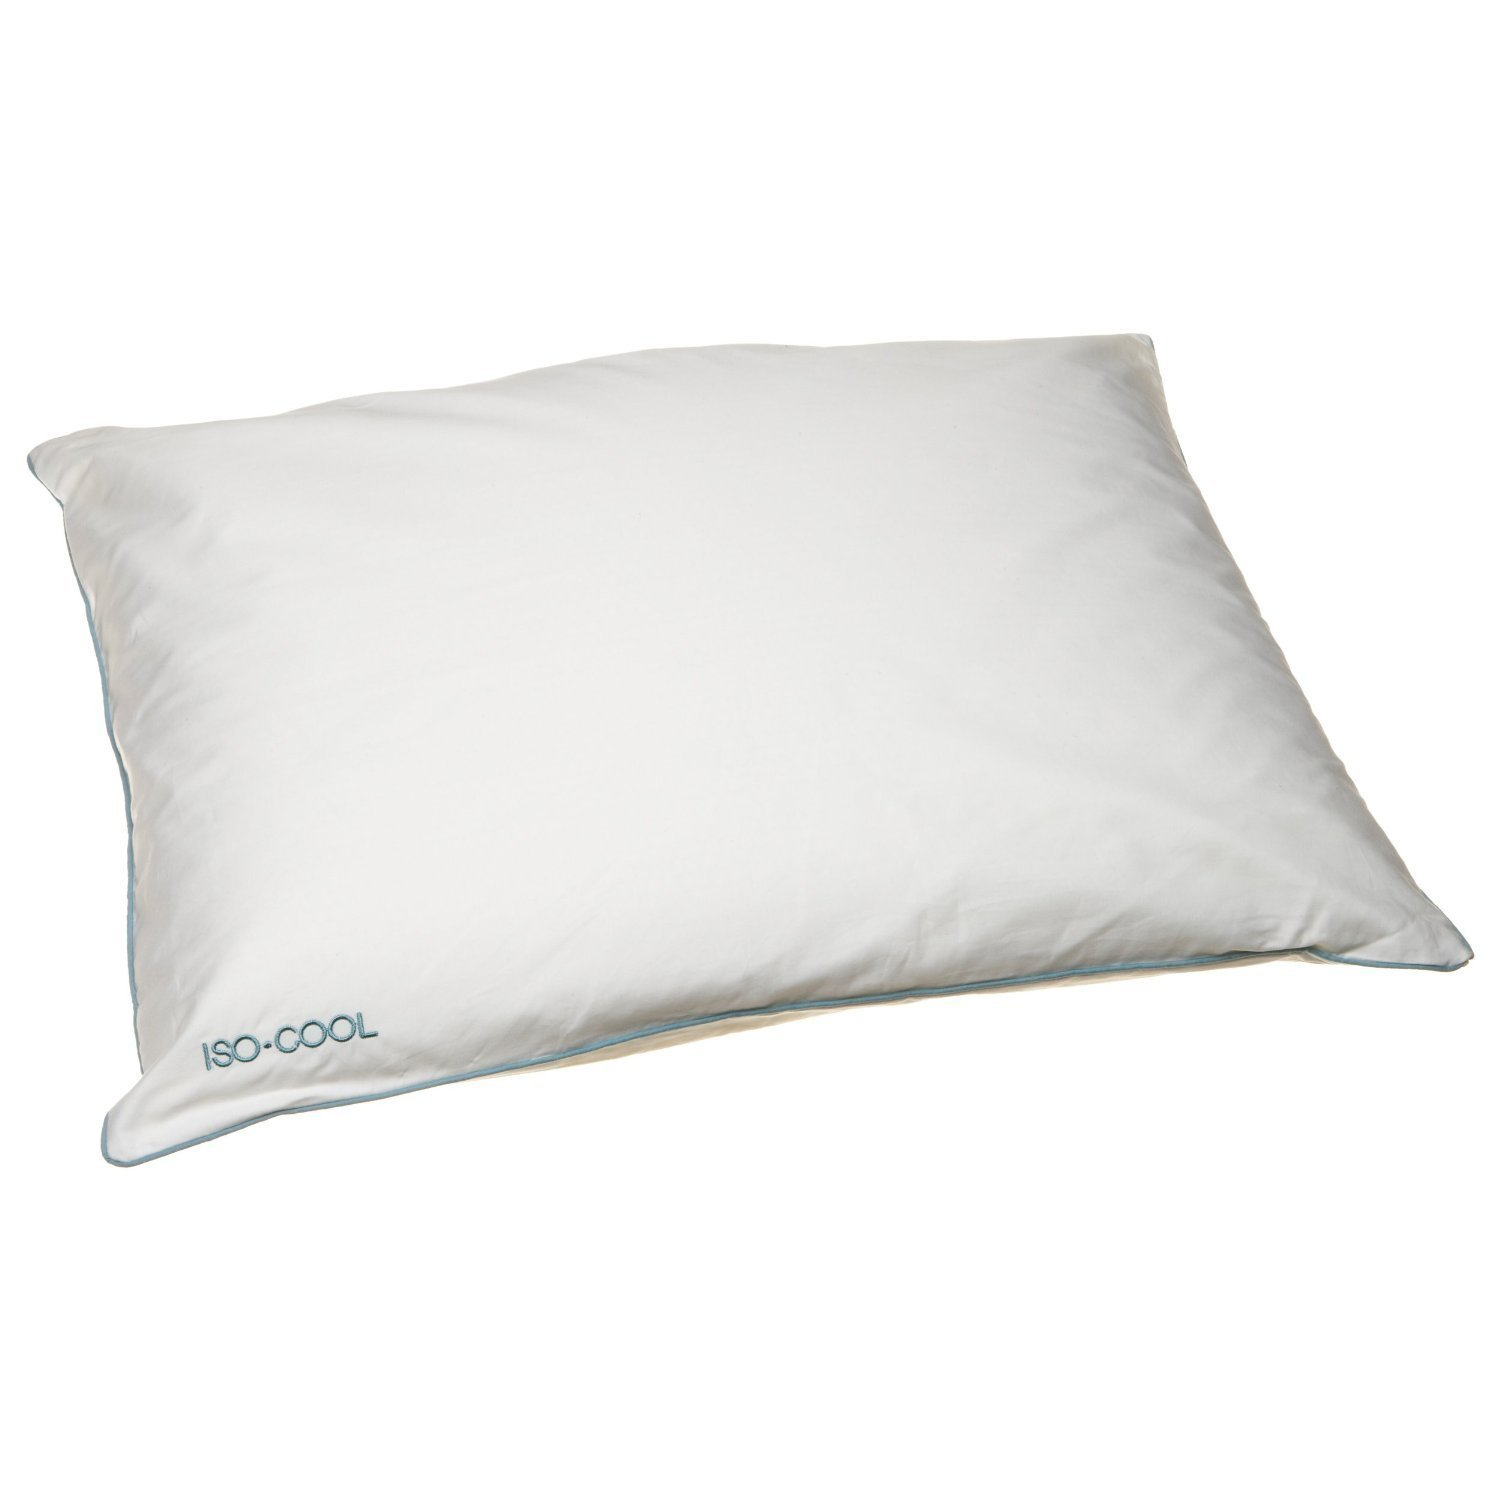 Amazoncom IsoCool Memory Foam Pillow Gusseted Side Sleeper